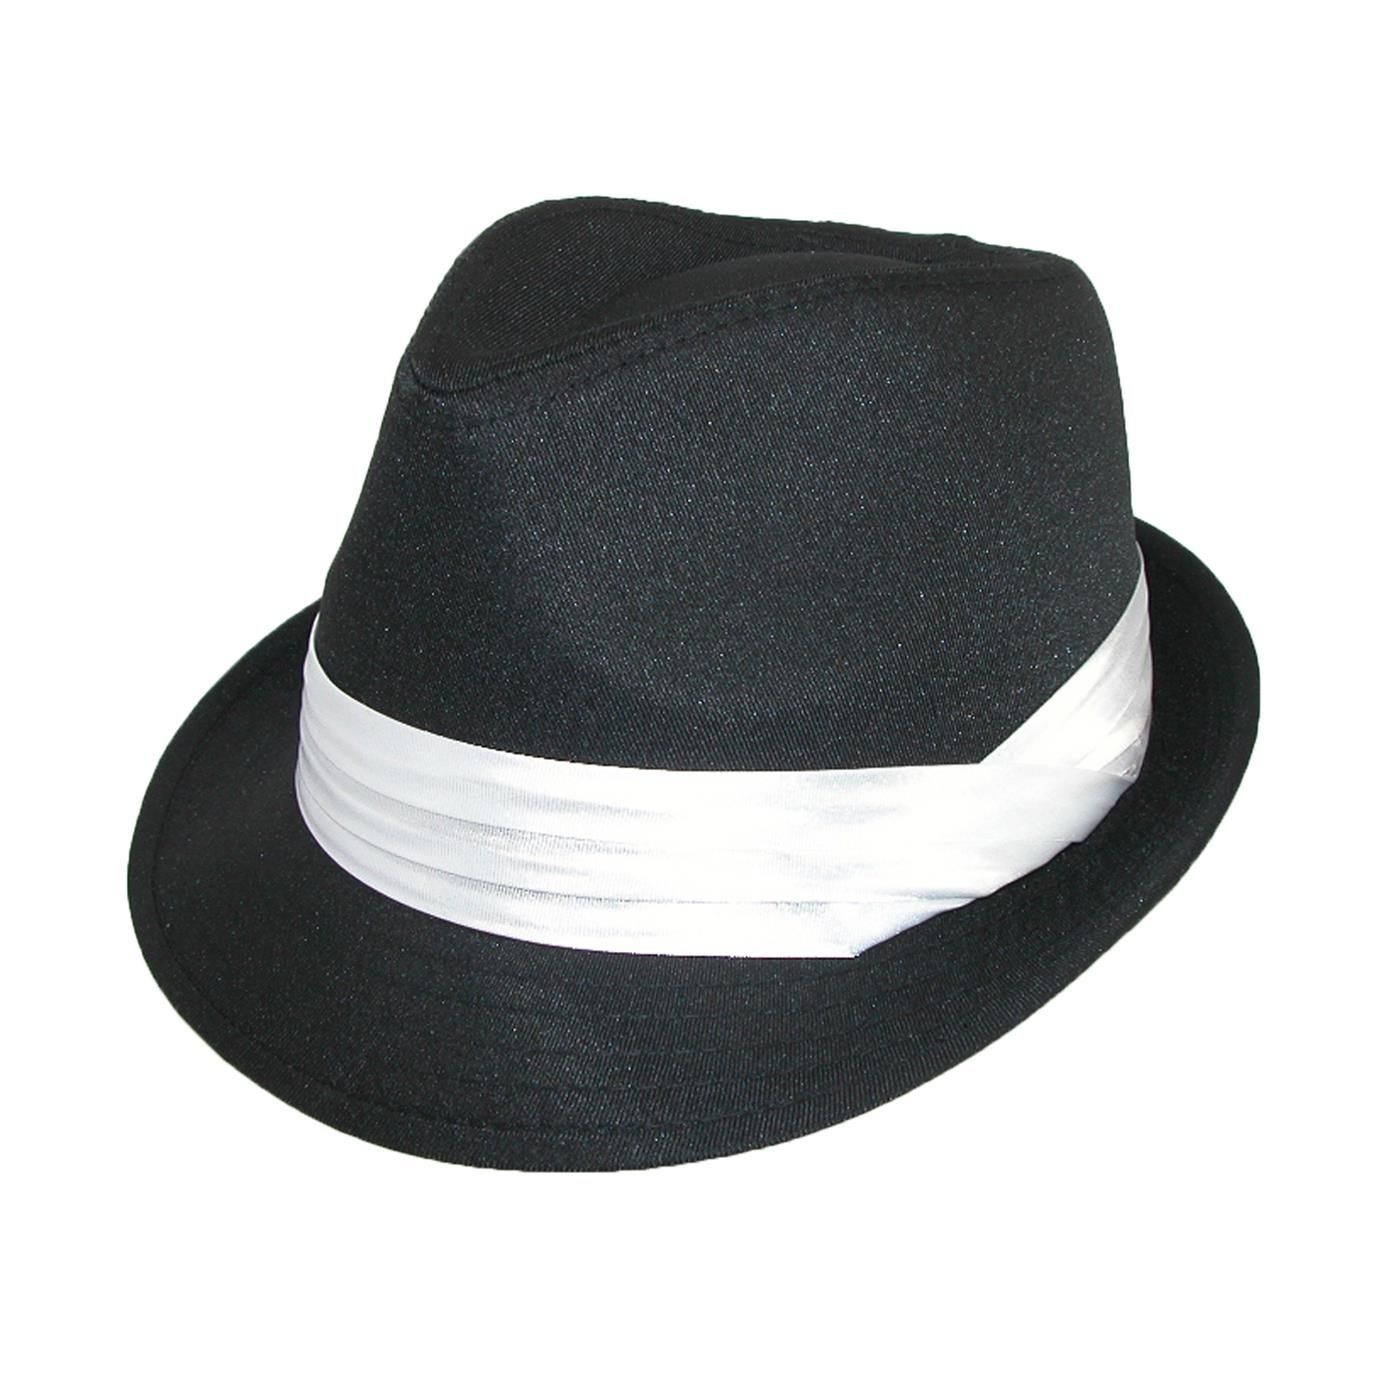 643b3e24998 This Kenny K fedora hat features 1.5 inch upturn brim. The 1.25 inch  pleated pug hatband with a classic teardrop shape crown.